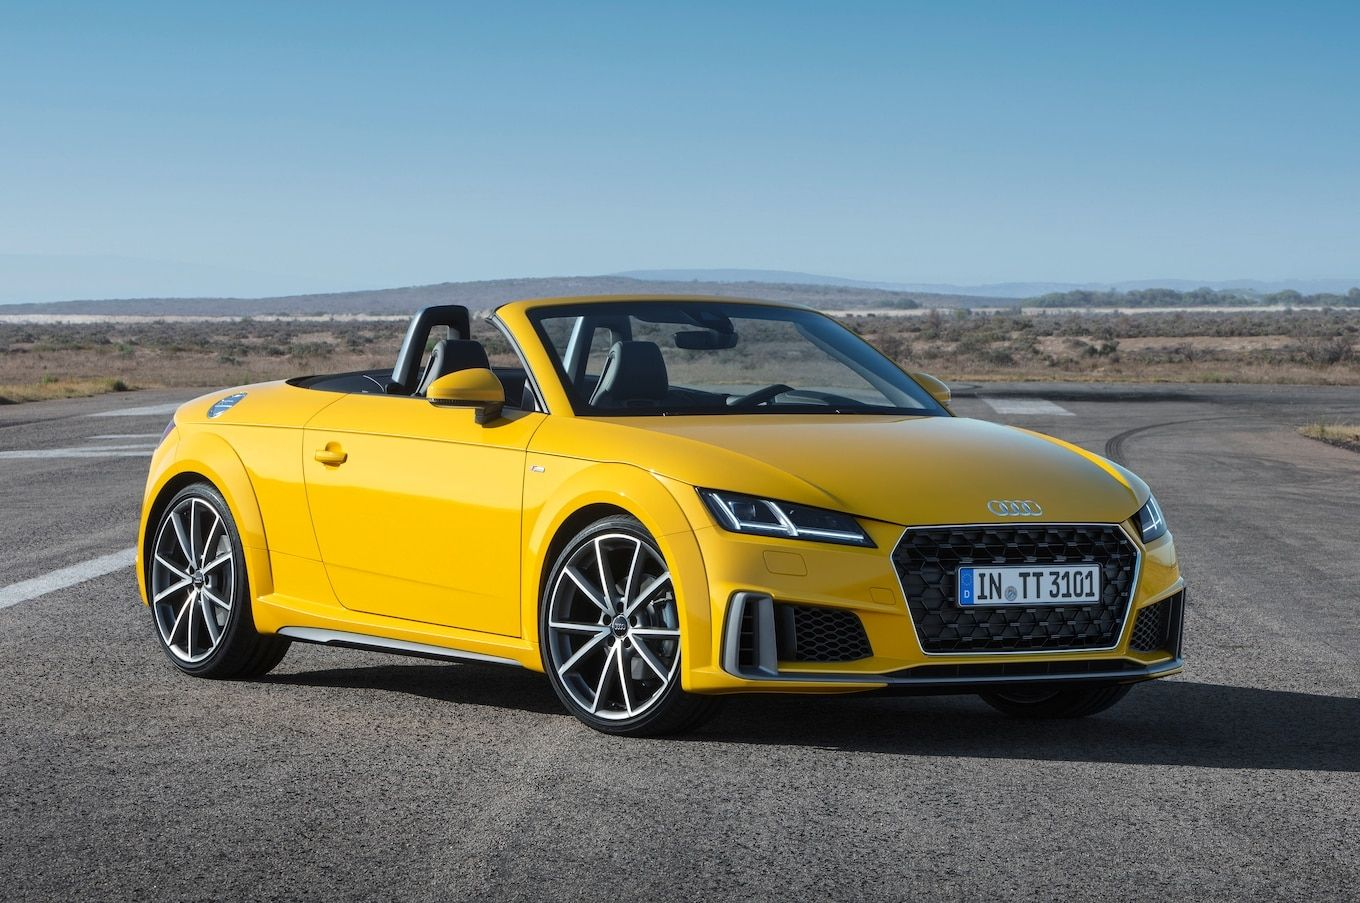 Twenty Years After The Series Best Of The Initial Tt The 3rd Generation Of The Audi Tt Is Getting An Extensive Upgra Audi Tt Audi Convertible Audi Tt Roadster